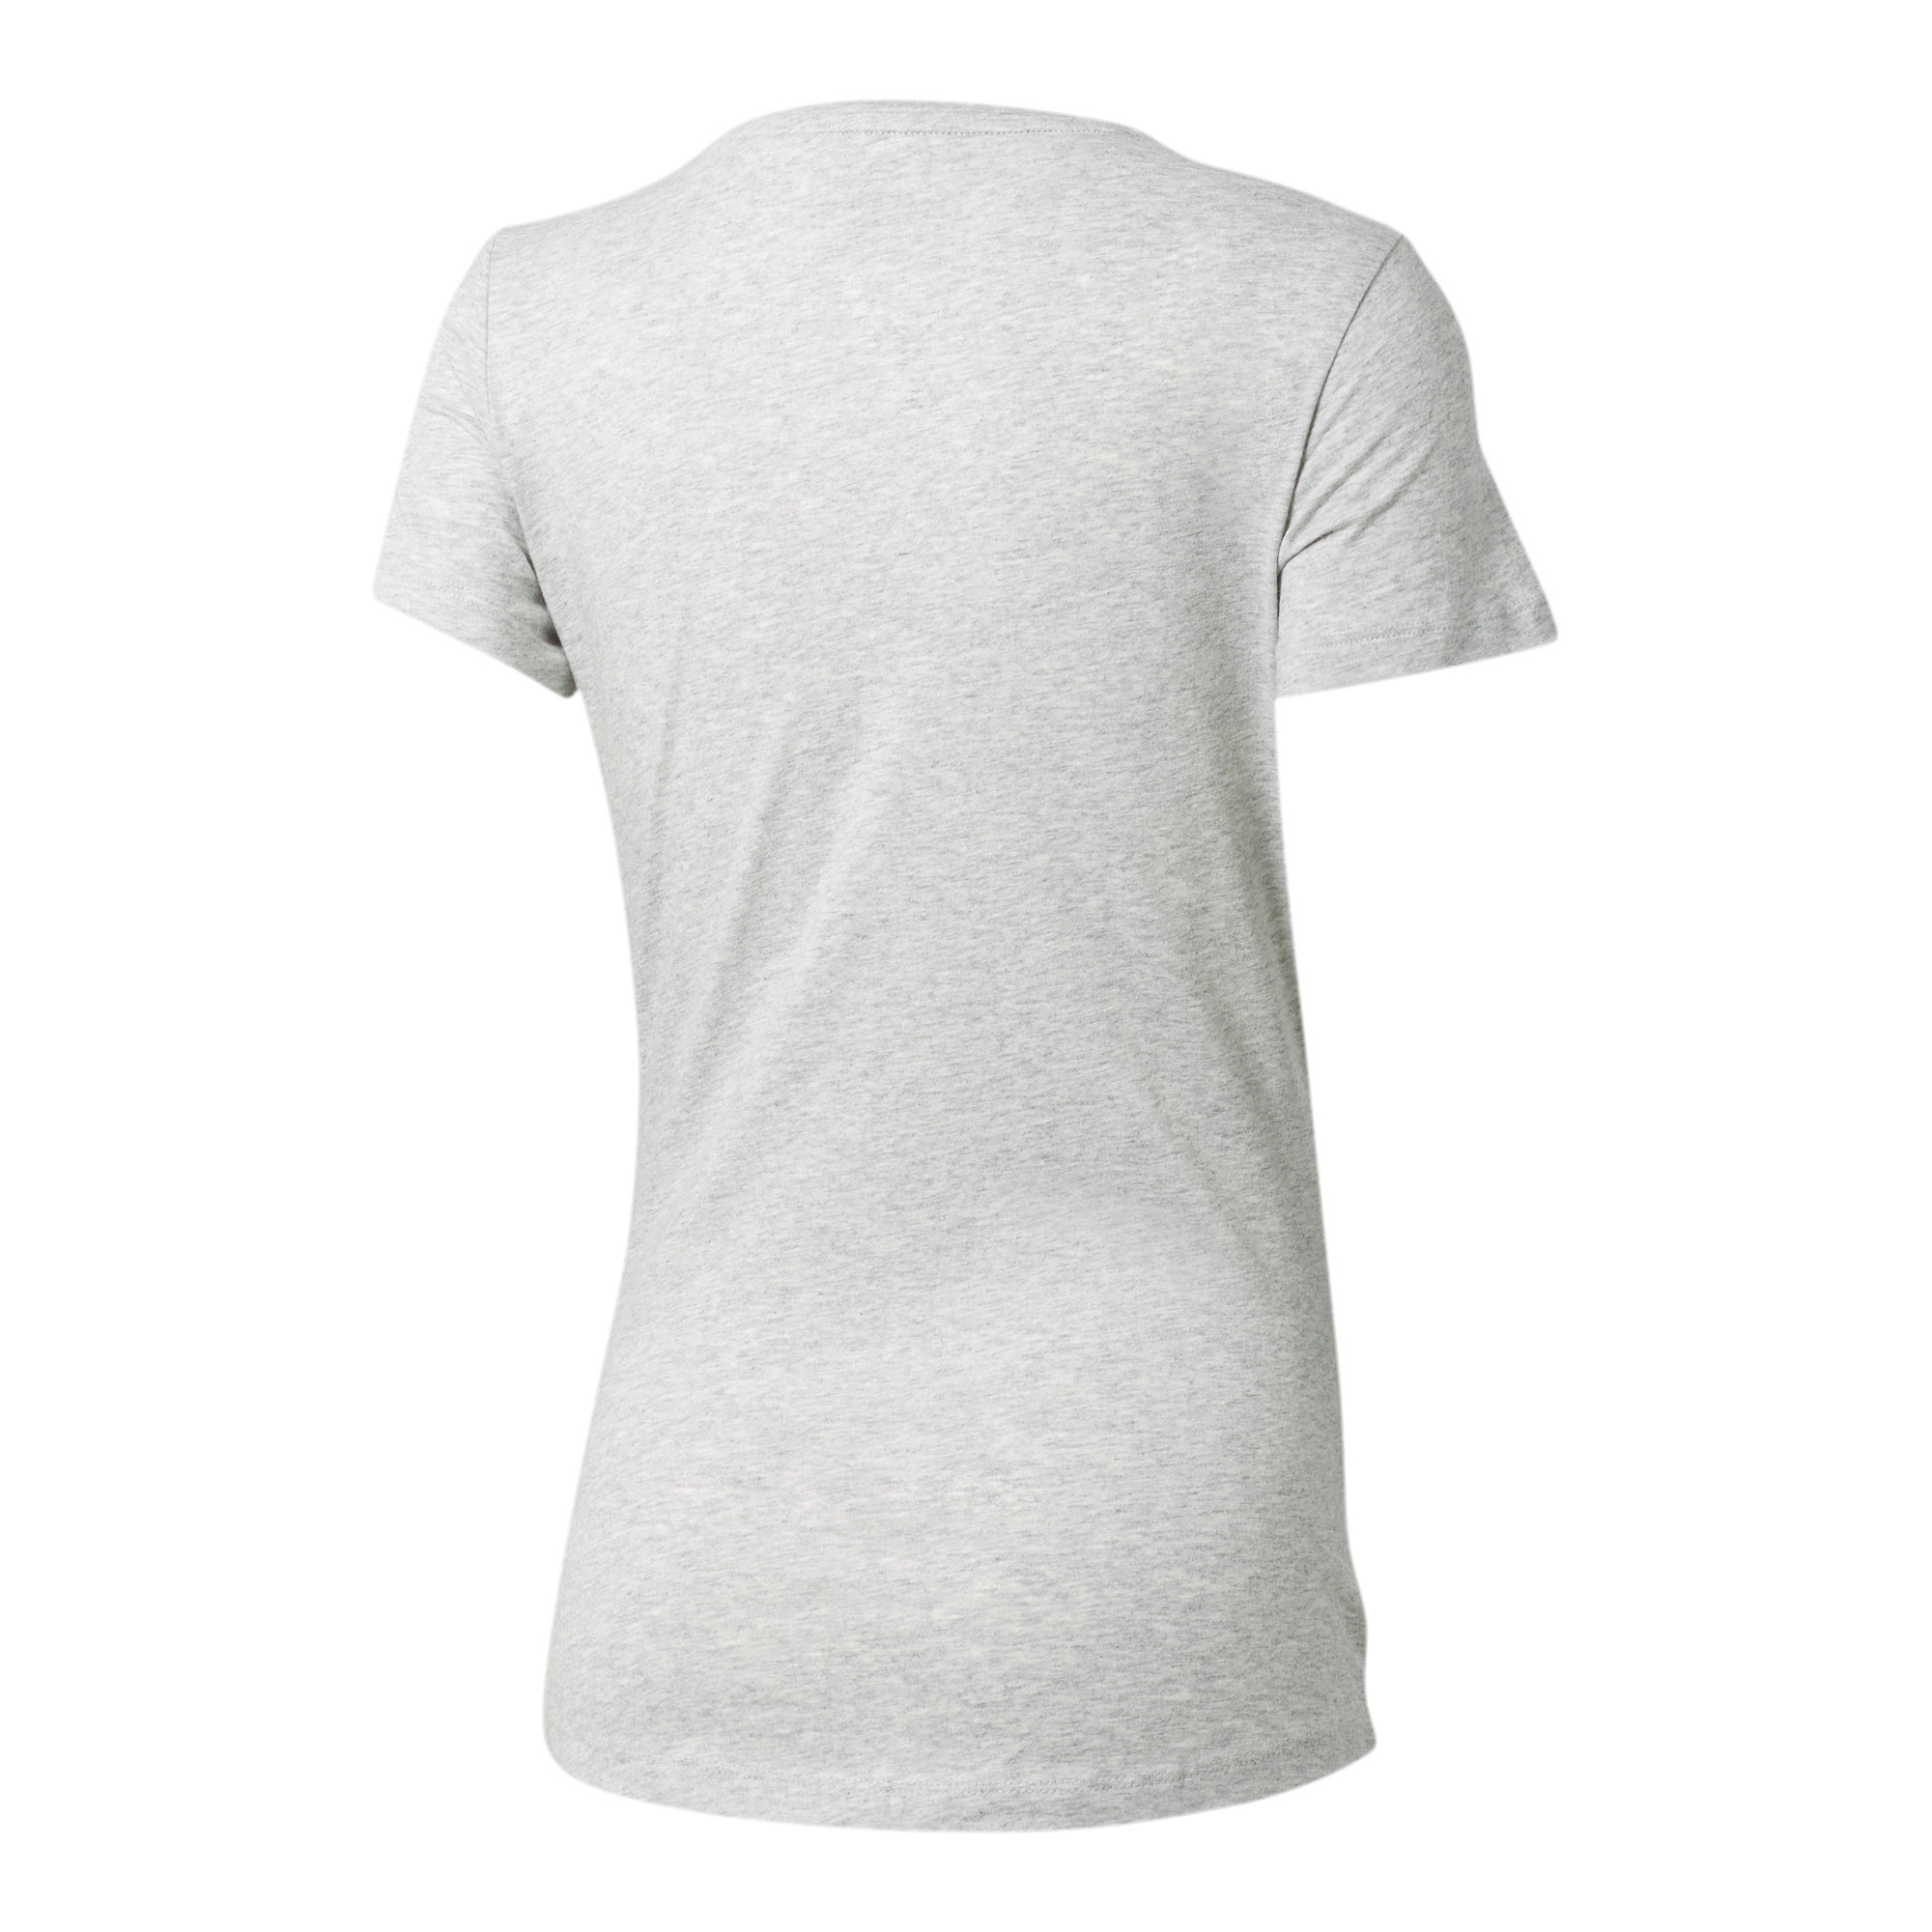 PUMA-Essentials-Women-039-s-Tee-Women-Tee-Basics thumbnail 3